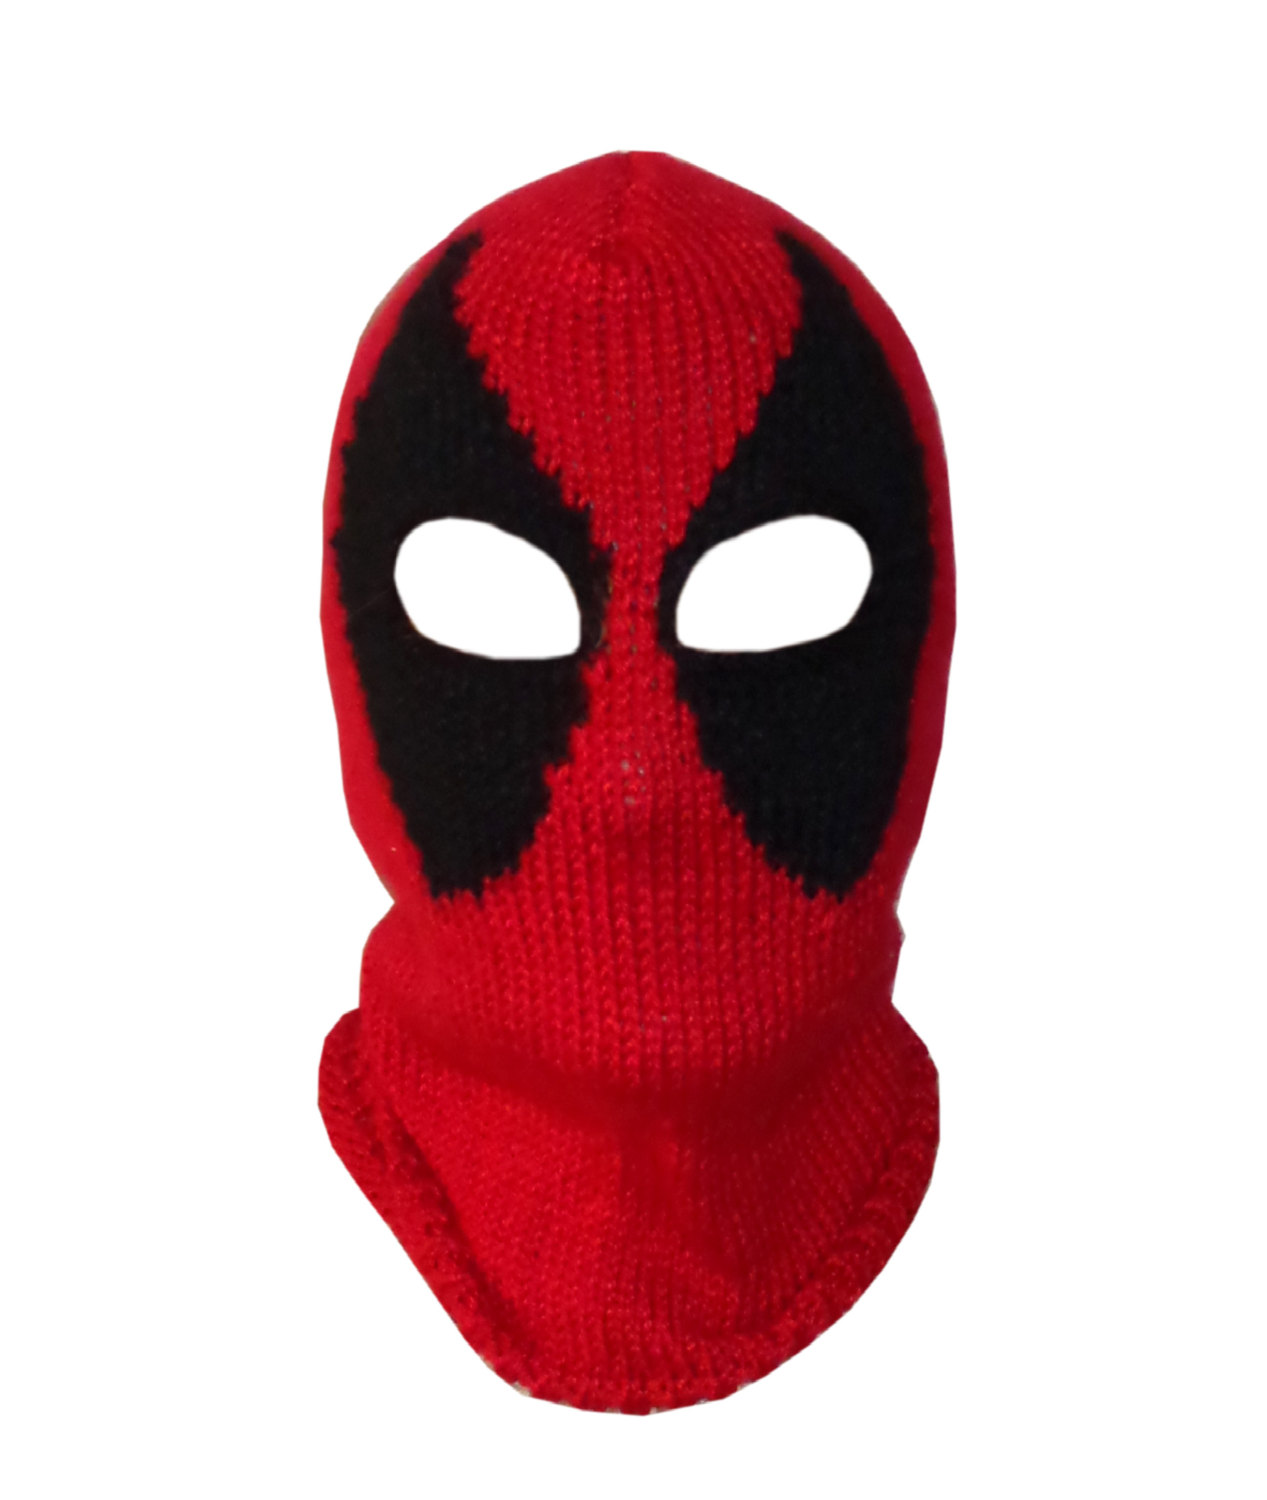 Mask clipart deadpool Mask Beanie mask Mask Superhero